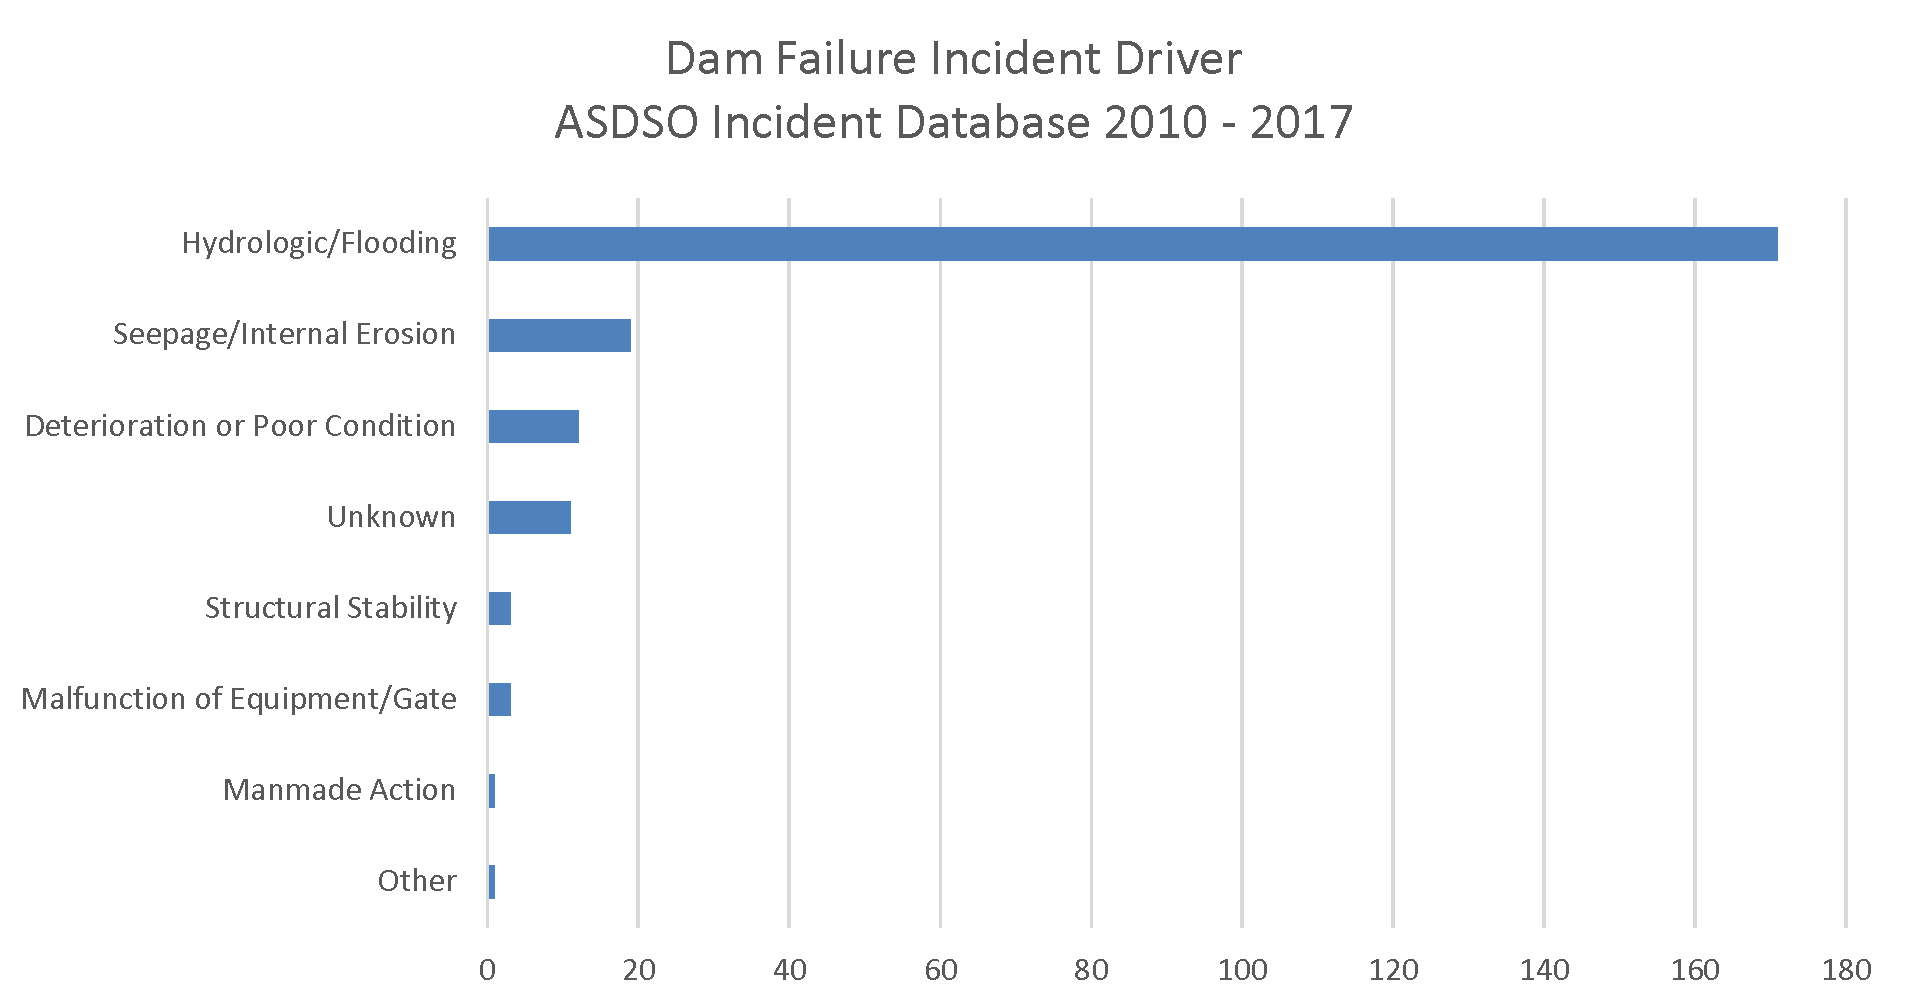 Dam Failure Incident Driver 10-17.png